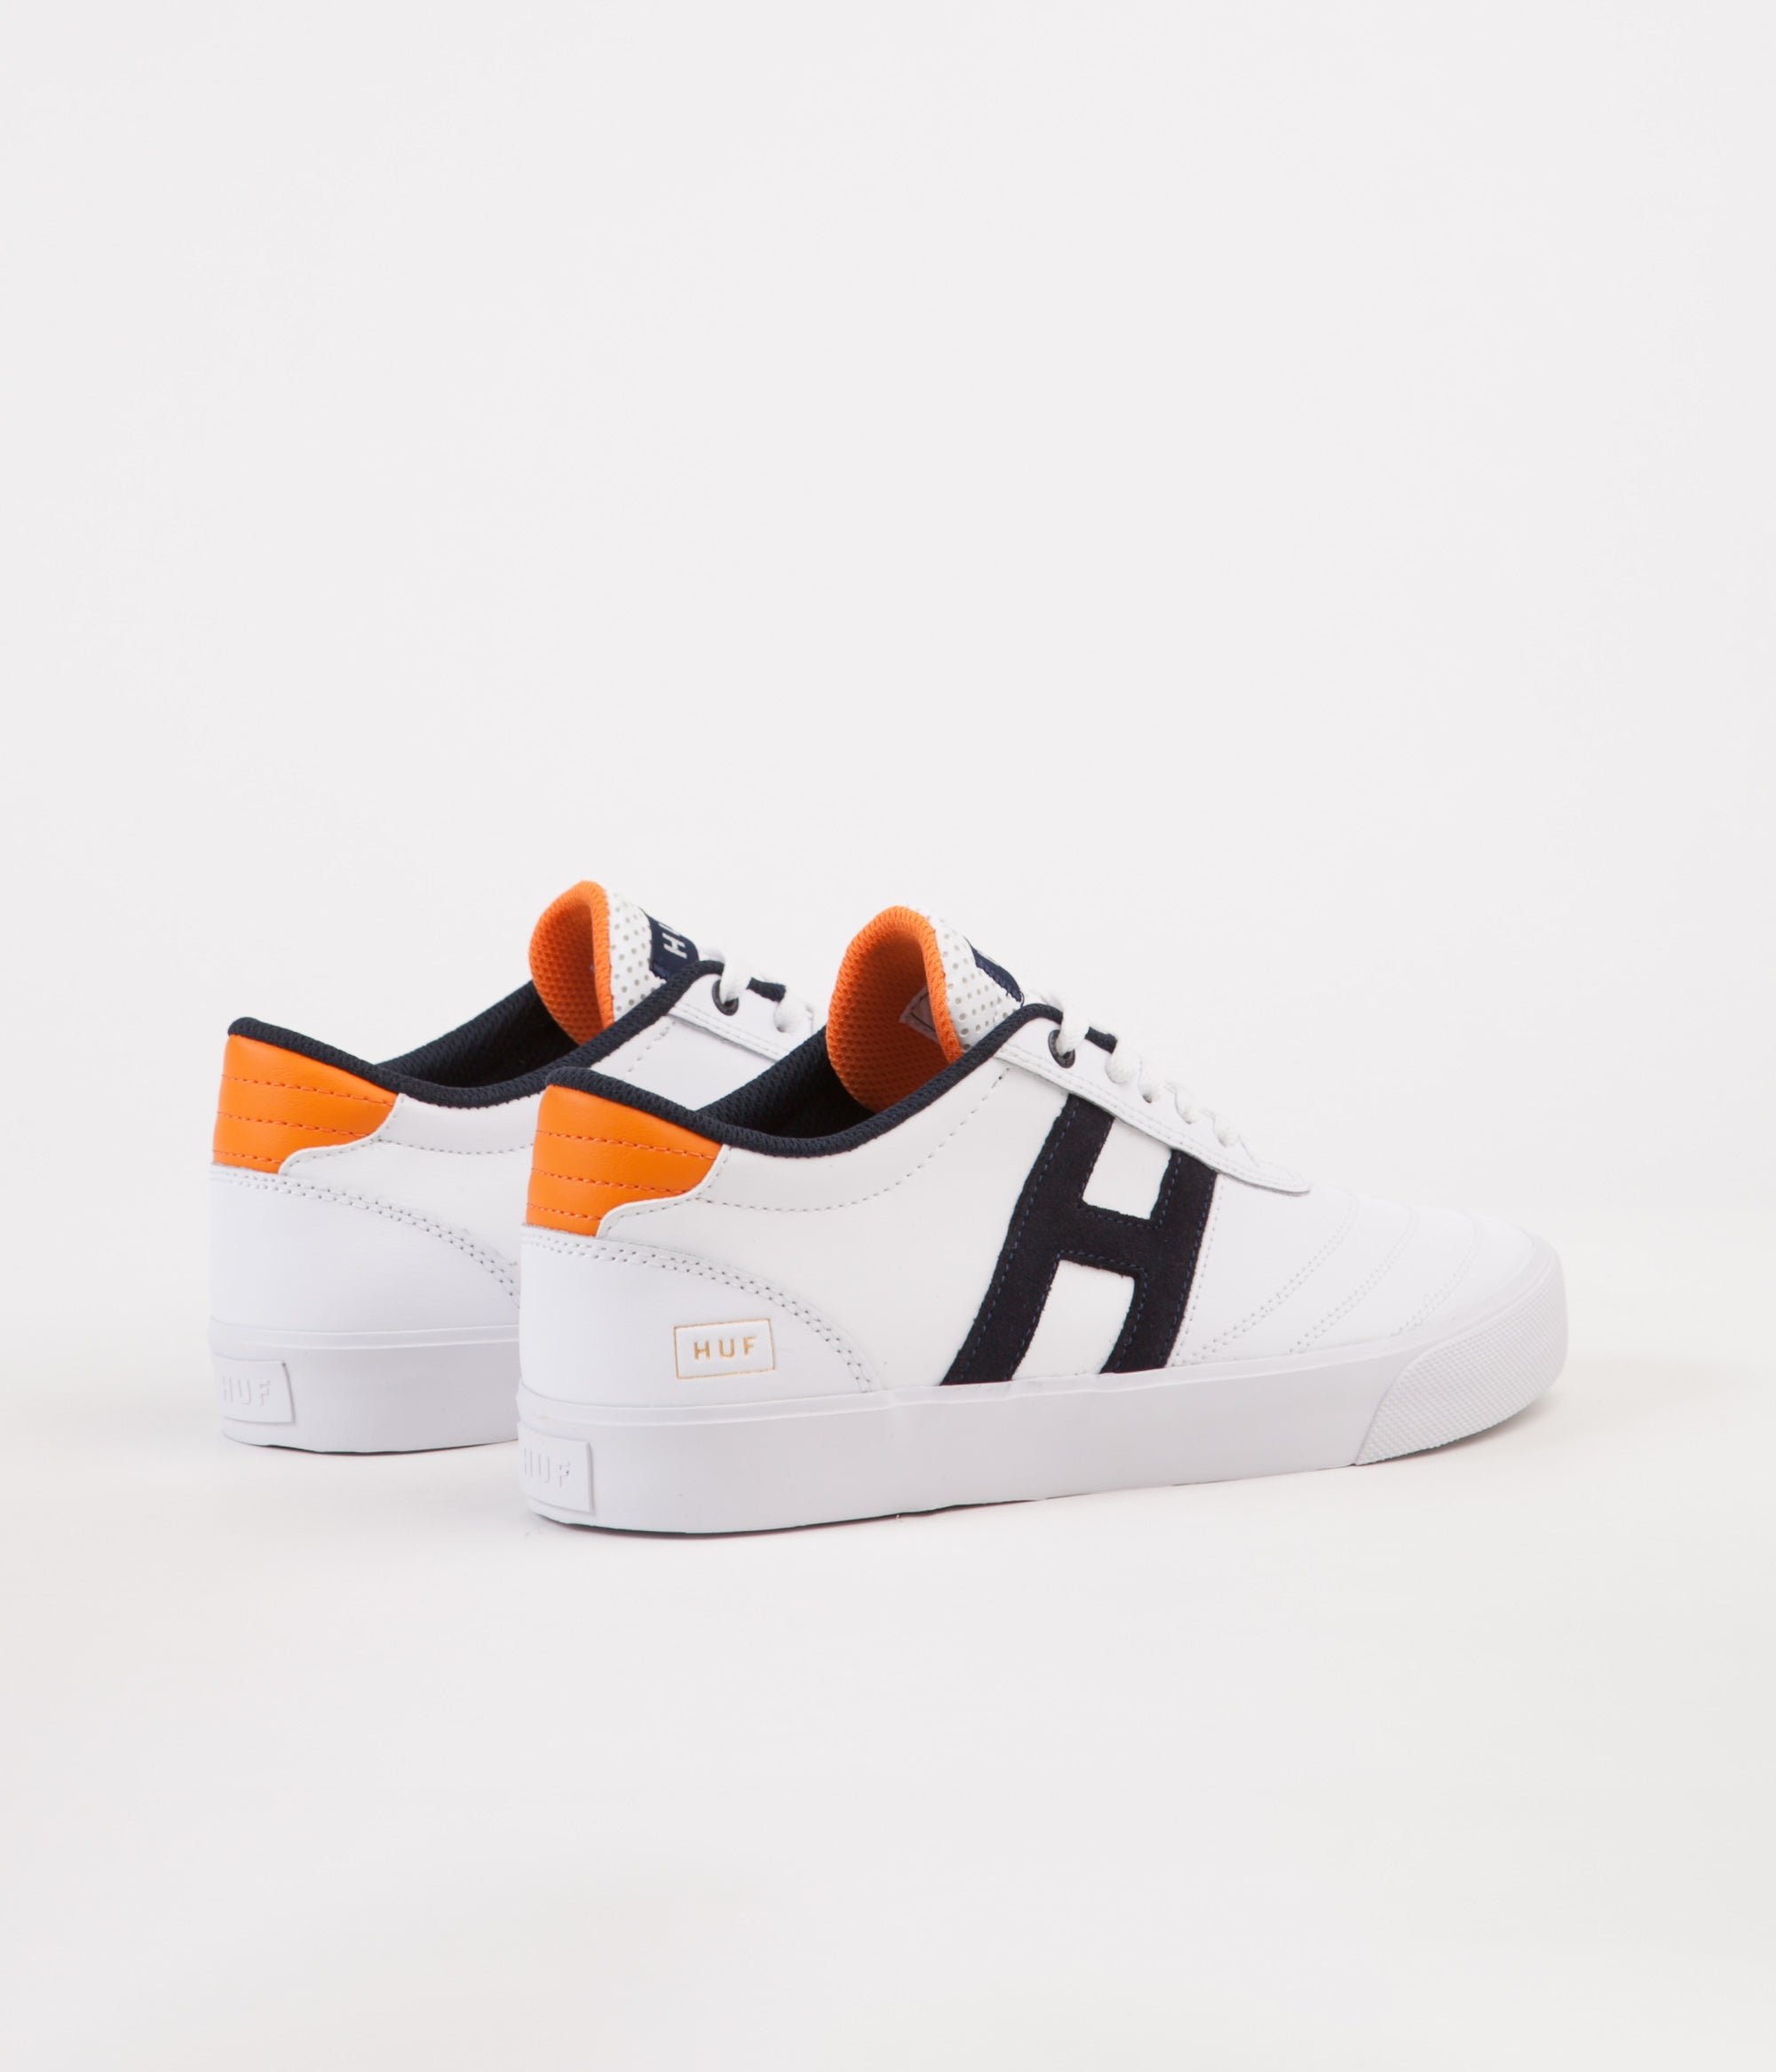 daa62e55ea ... HUF Galaxy Shoes - White   Orange   Navy ...